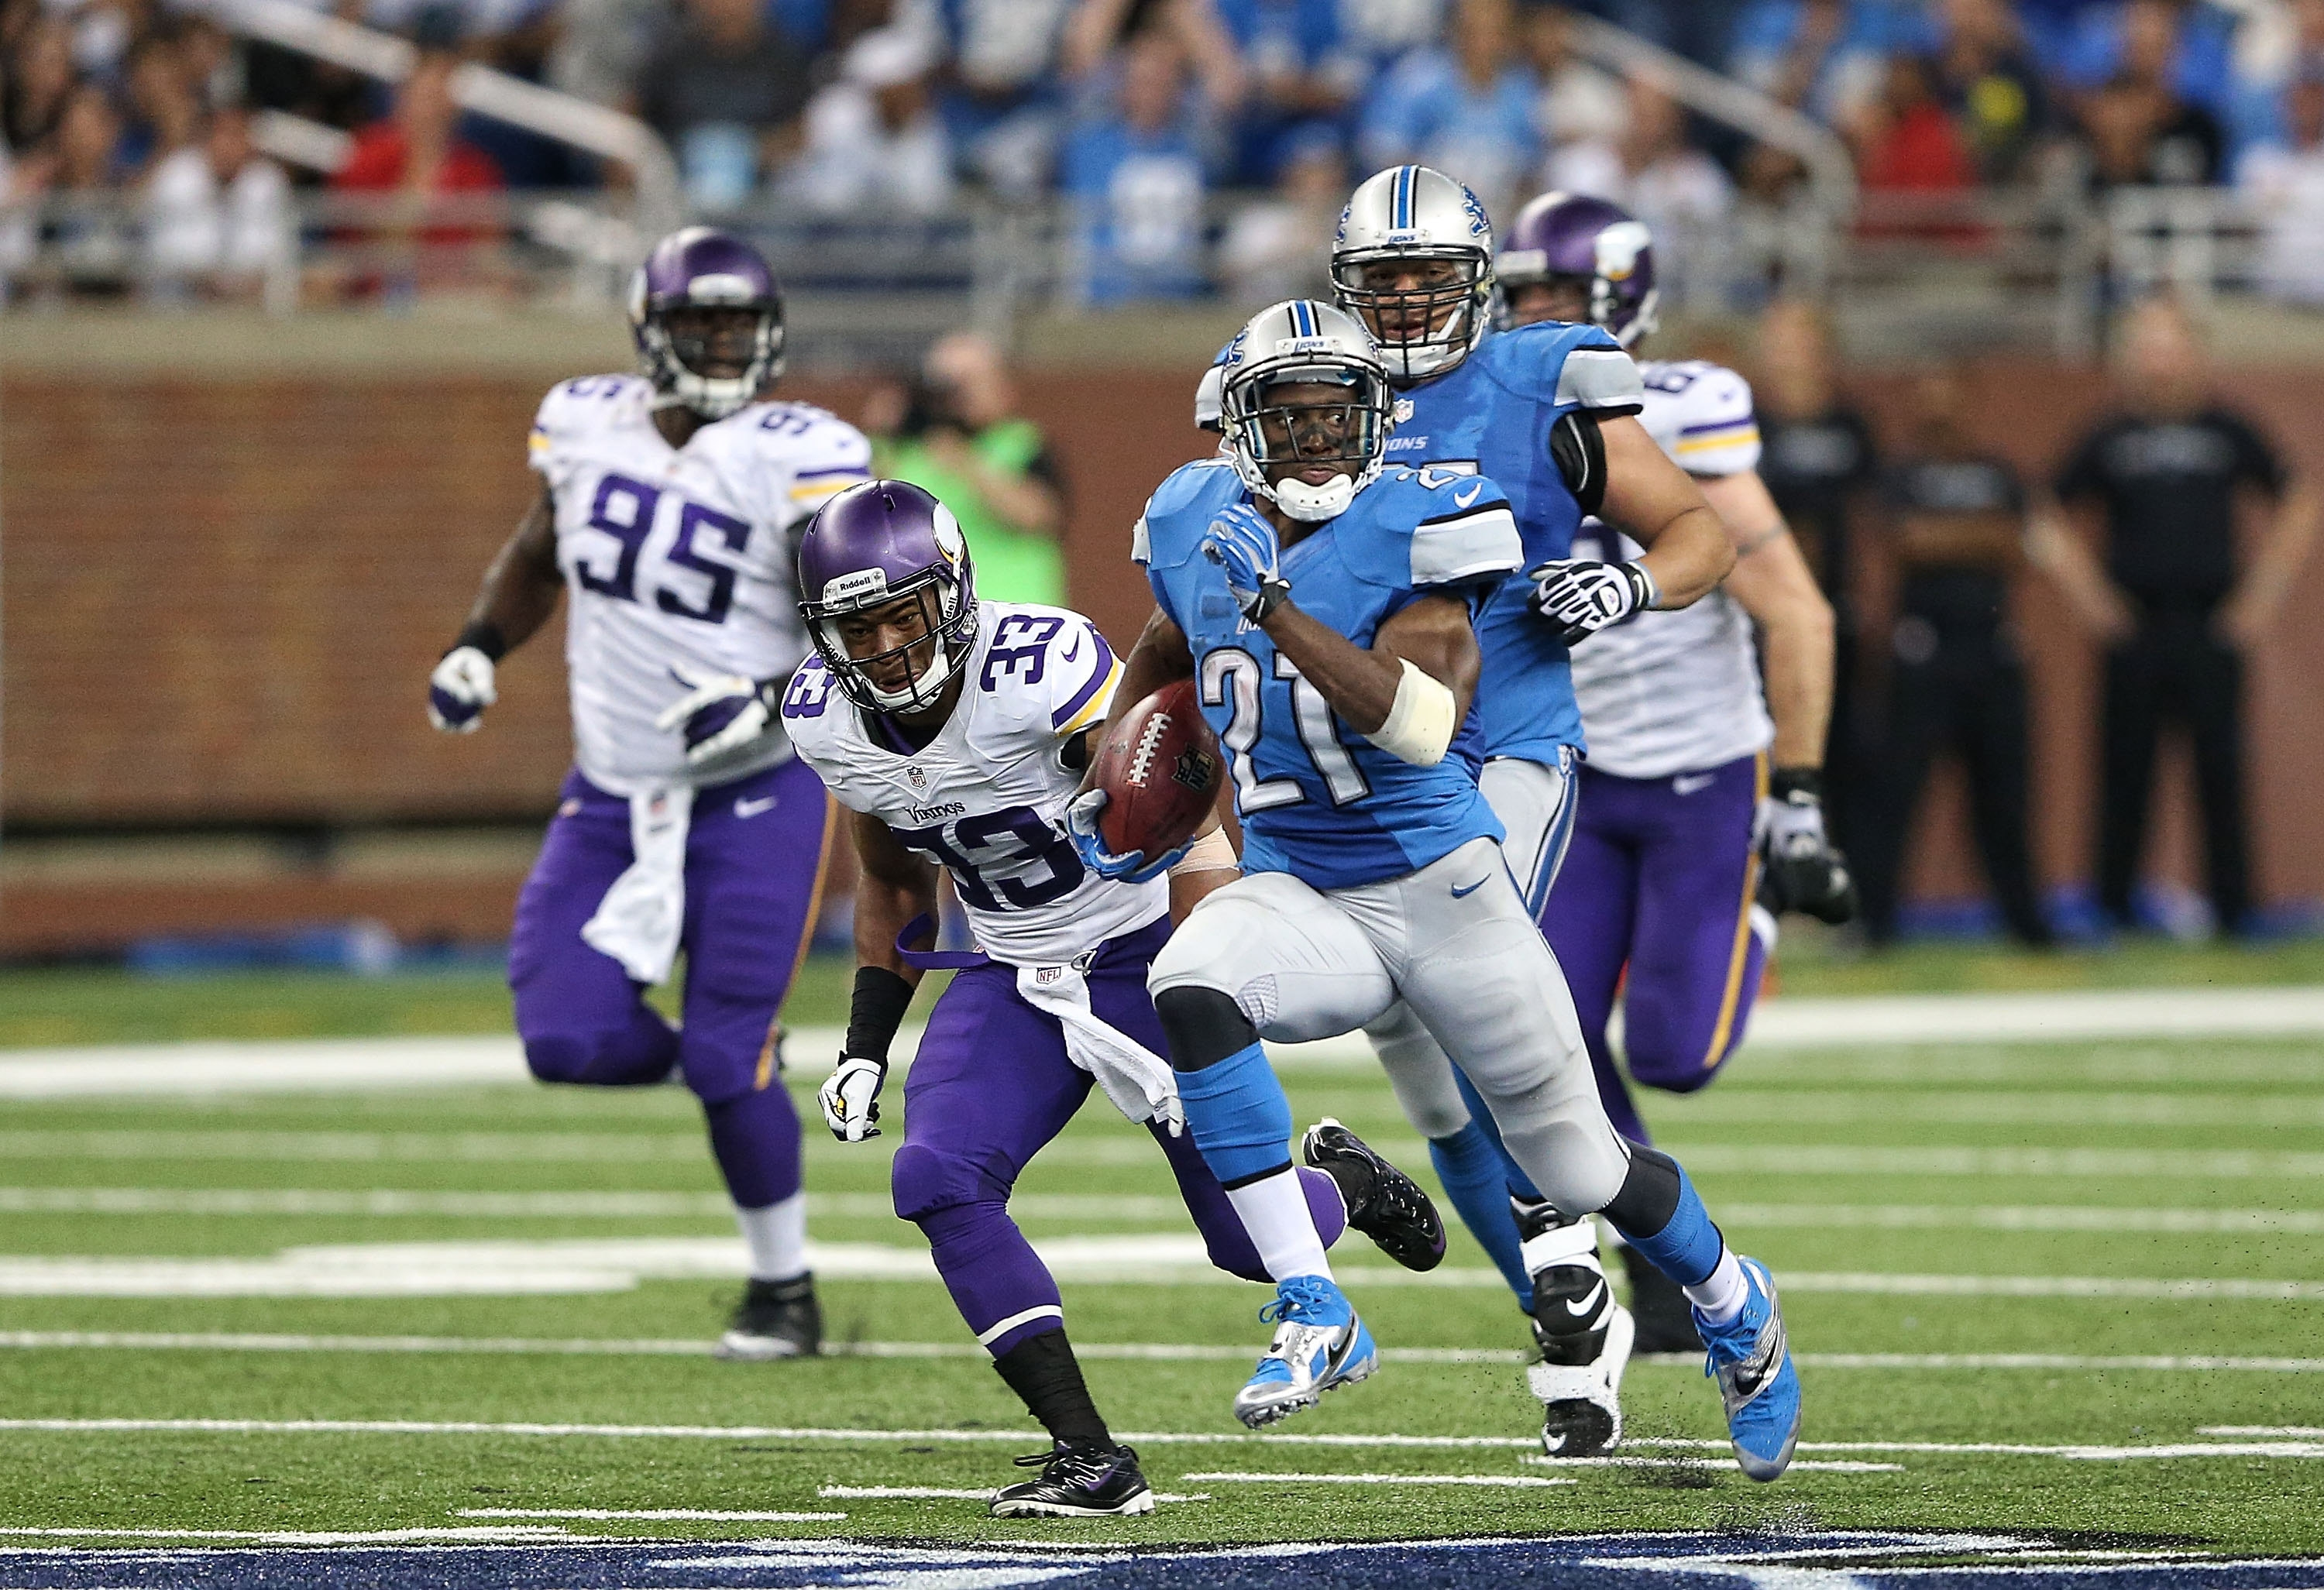 Reggie Bush races 77 yards for a third-quarter touchdown during the Detroit Lions' 34-24 win over Minnesota. Bush, making his Lions debut, accounted for 191 yards in total offense.